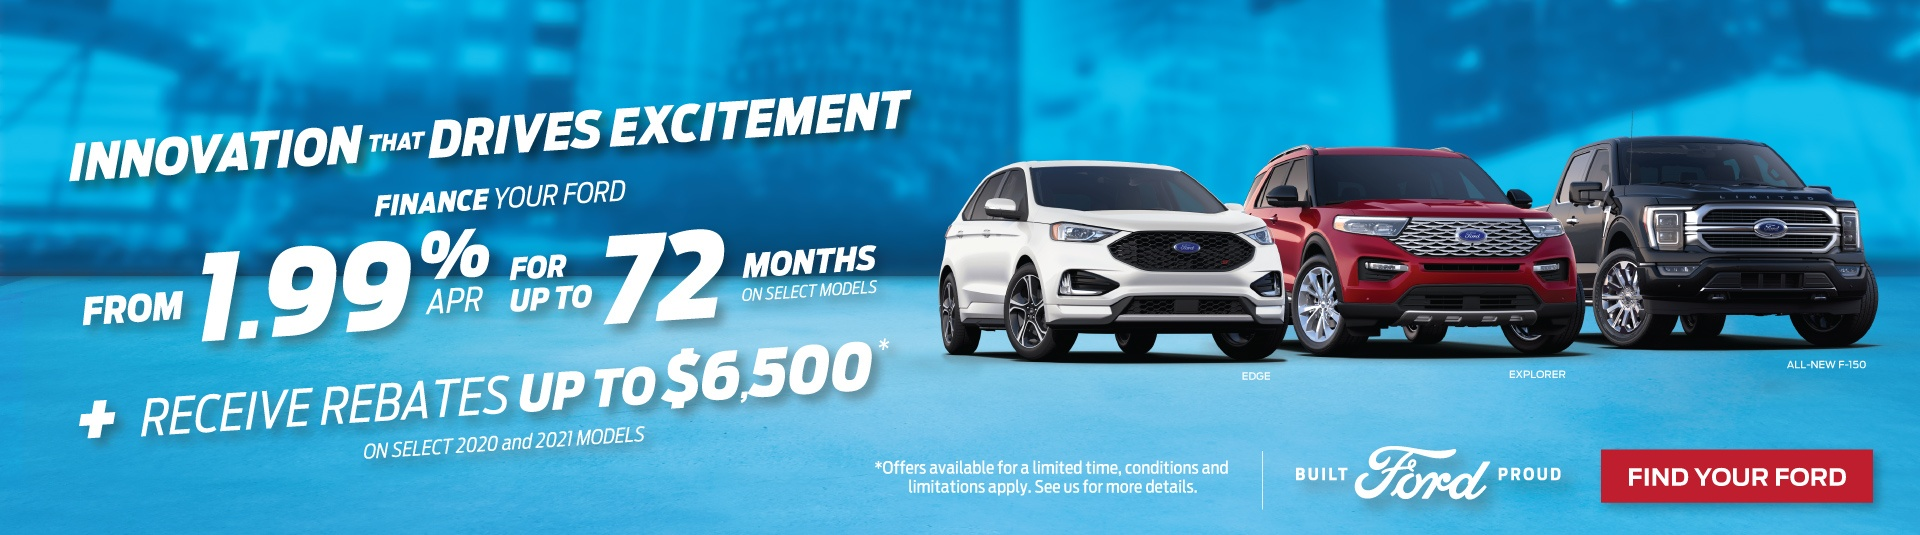 Bayfield_Ford_Barrie_Built_Proud_March_Offer